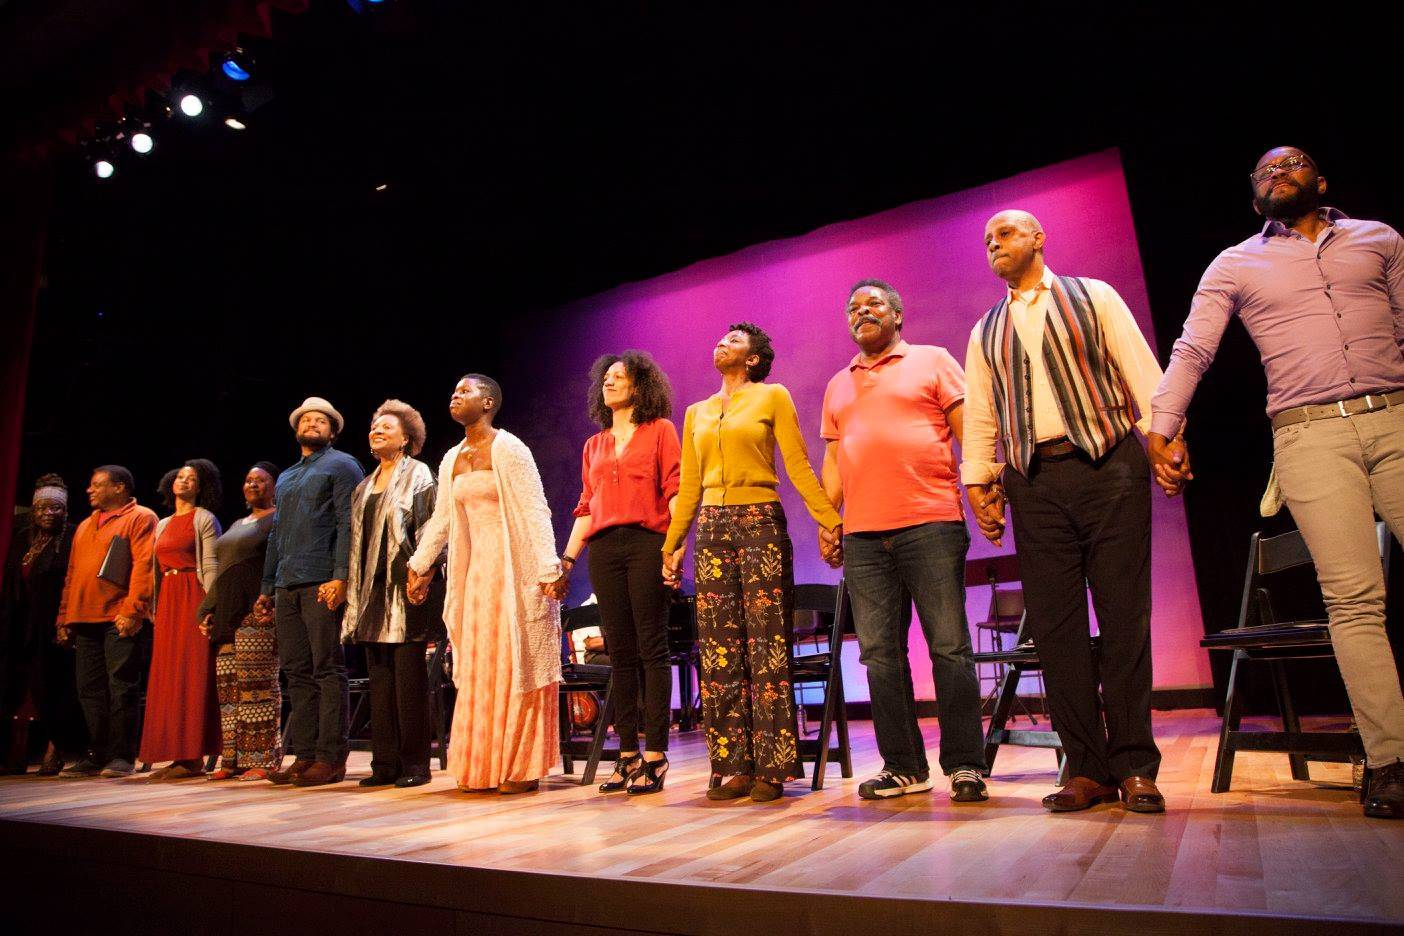 Reading of Zora Neale Hurston's Their Eyes Were Watching God, directed by Ruben Santiago-Hudson (Spring 2017). Photo Courtesy of The Billie Holiday Theatre, Photo Credit: Hollis King